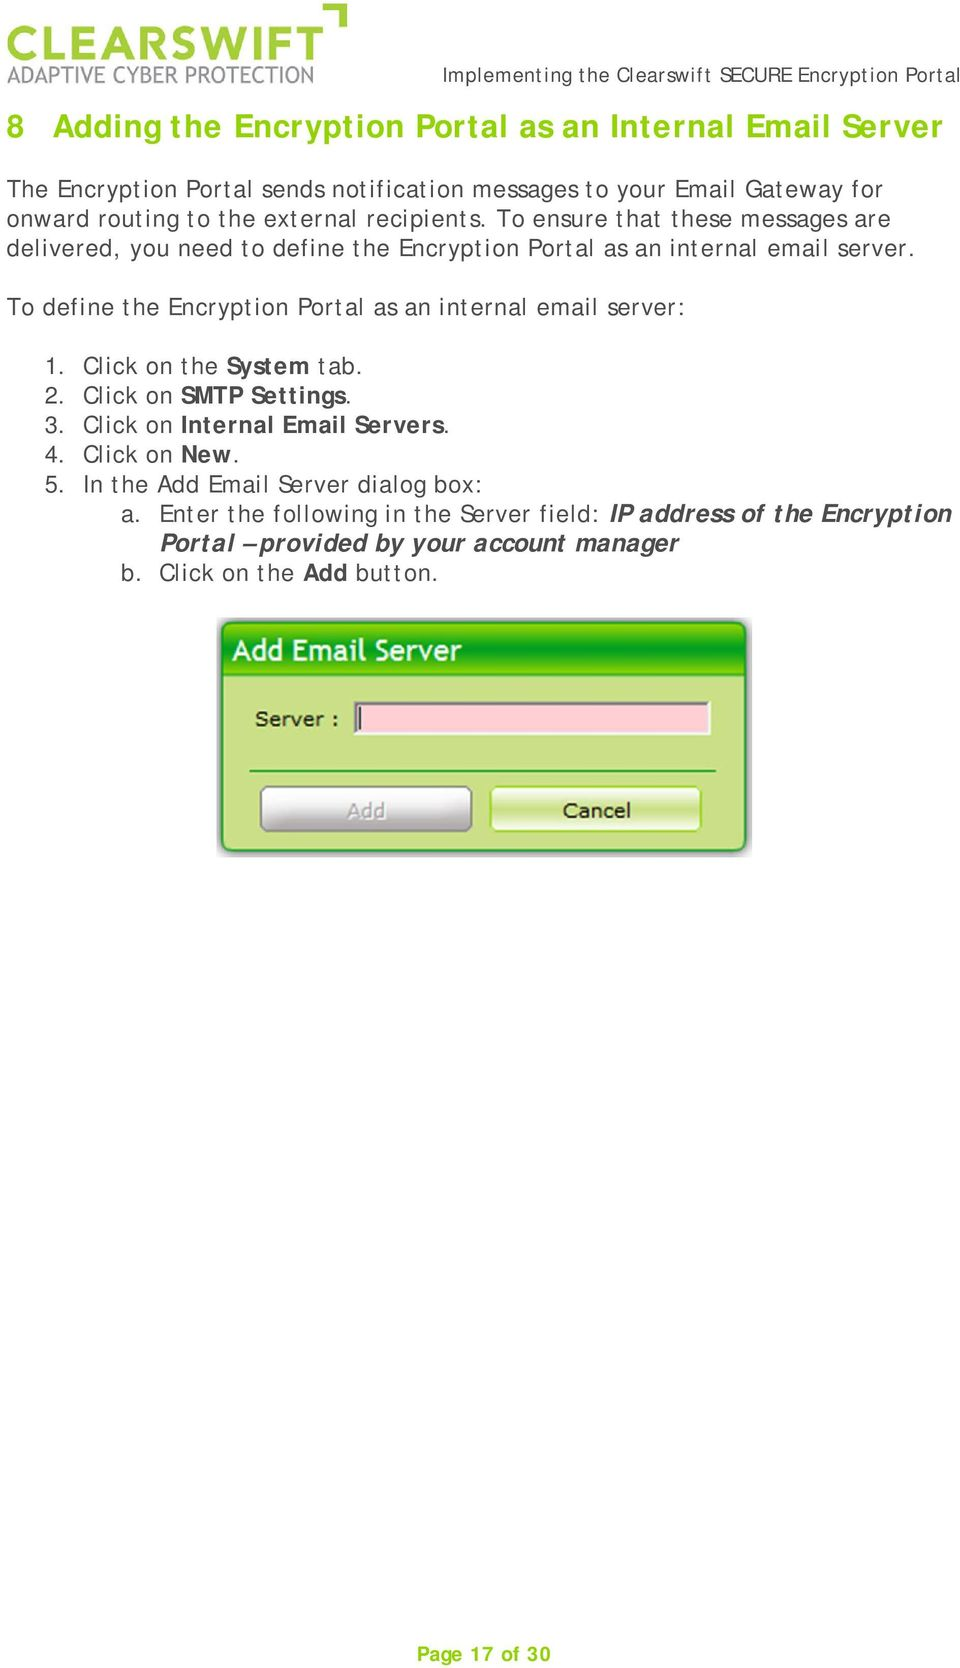 To define the Encryption Portal as an internal email server: 1. Click on the System tab. 2. Click on SMTP Settings. 3. Click on Internal Email Servers. 4.